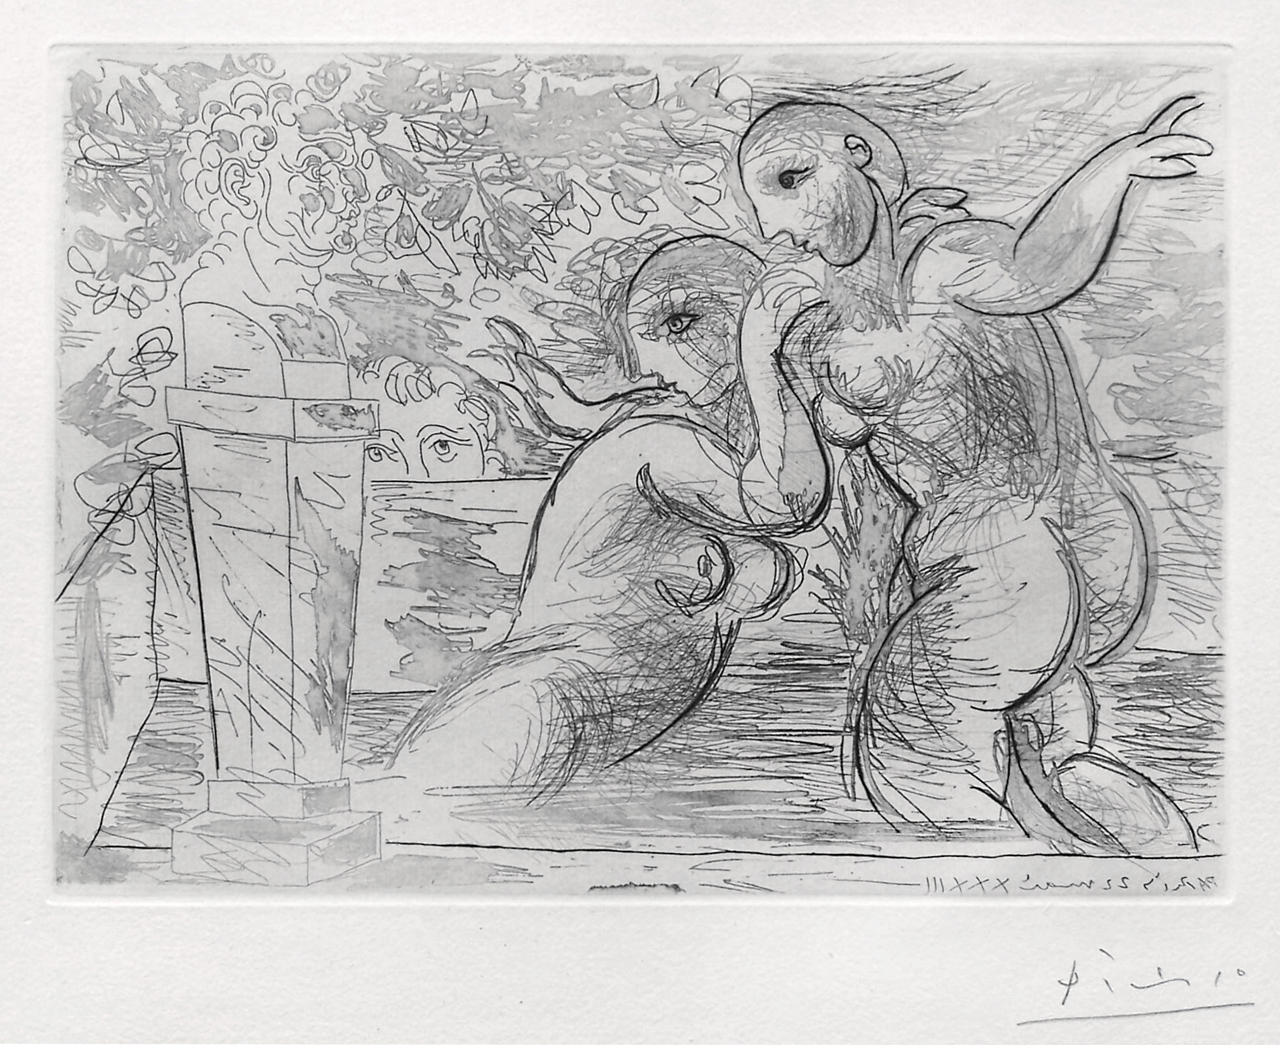 Pablo Picasso, The Surprised Bathing Women (Les Baigneuses Surprises), 1933, Etching